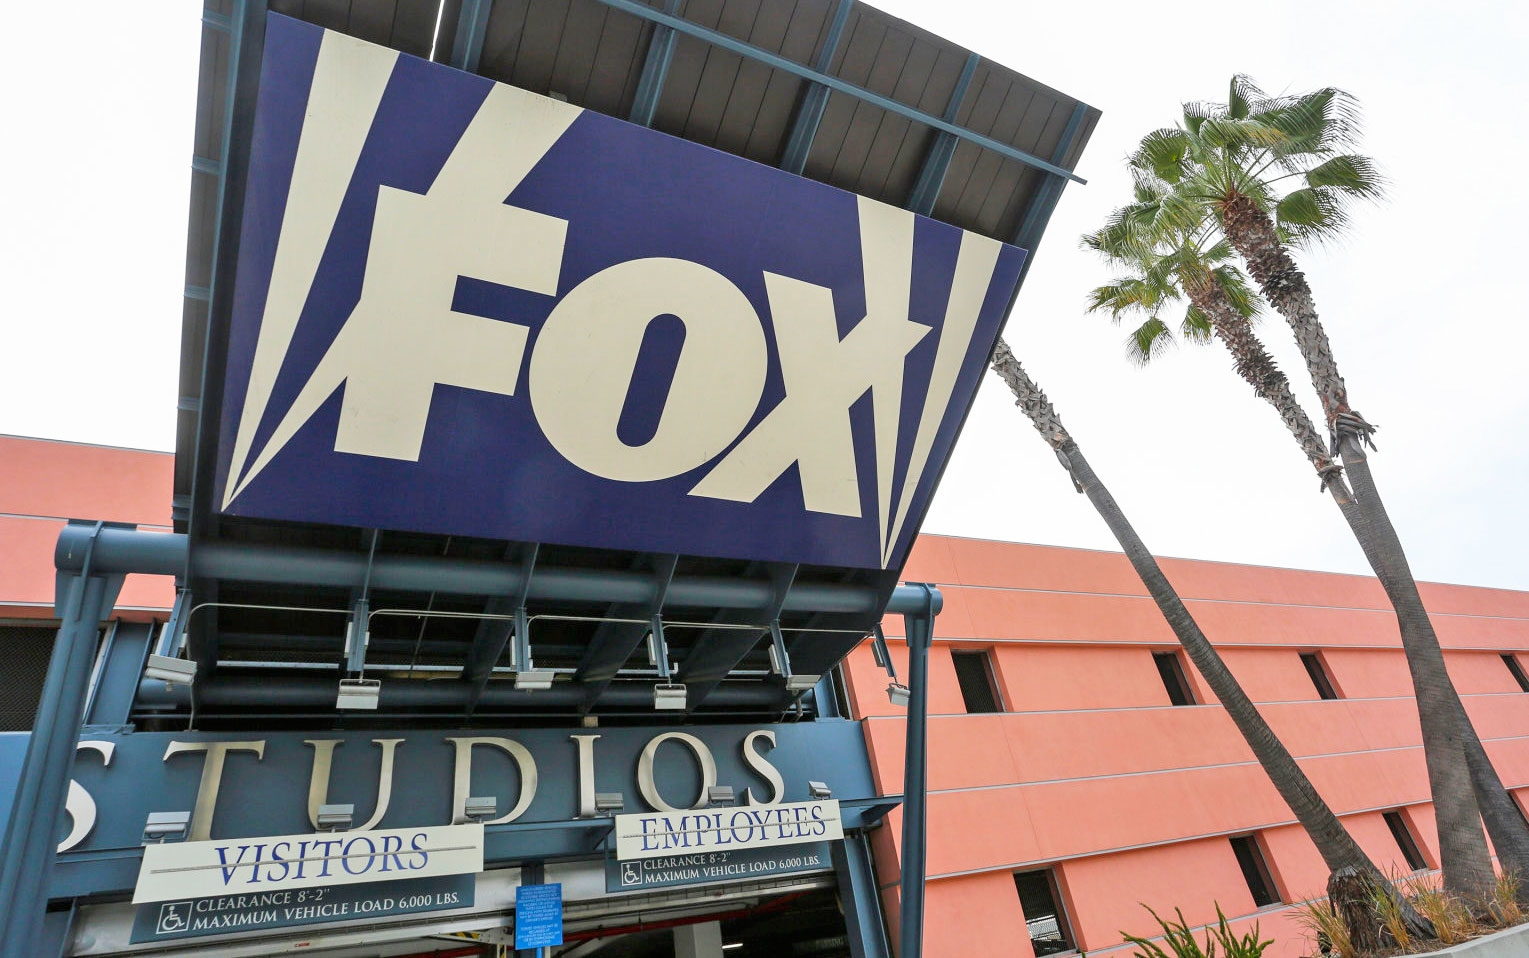 21st Century Fox held talks to sell most of its assets to Disney | DeviceDaily.com